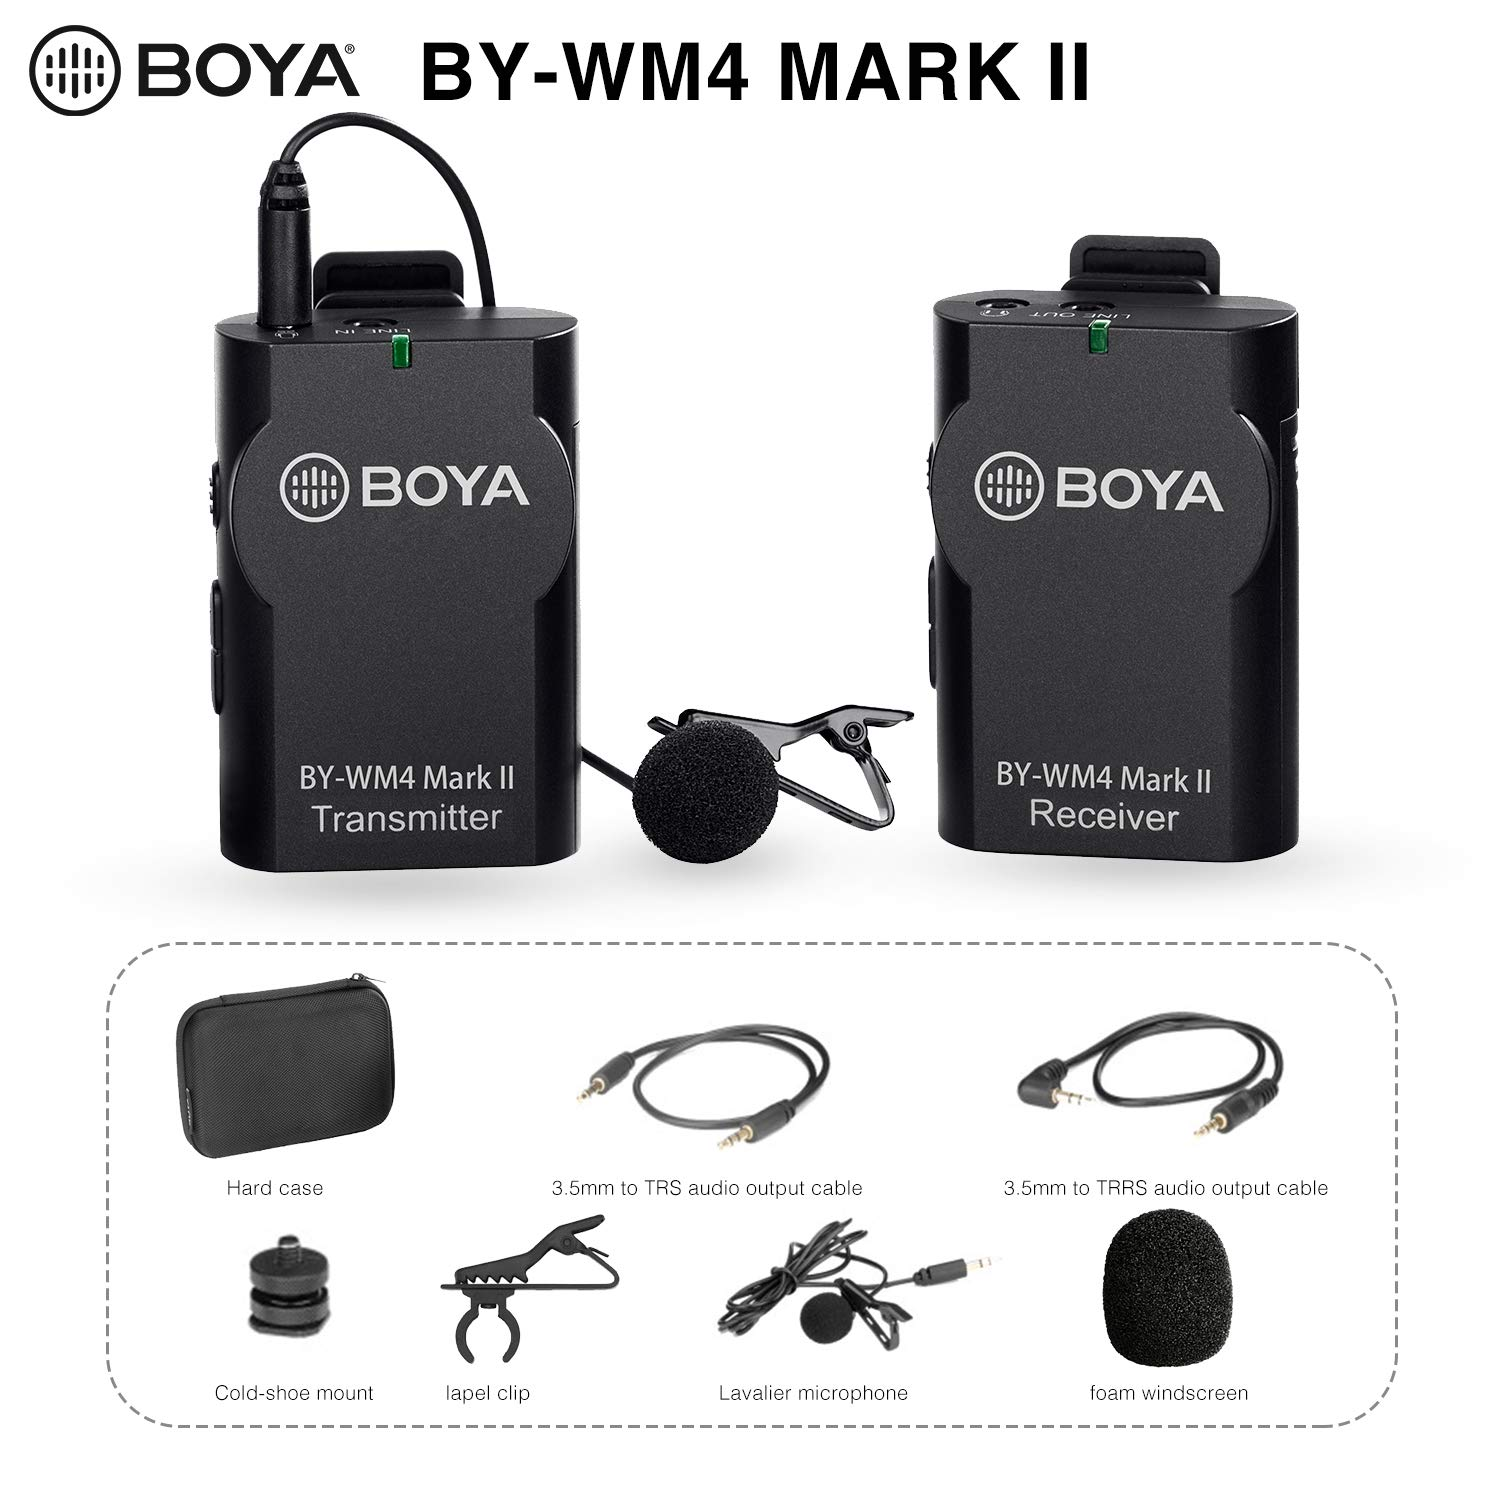 BOYA Upgrade 2.4GHz Wireless Lavalier Lapel Mic, Omnidirectional Microphone System Audio Recording with Easy Clip On, 3.5mm Plug for Canon Nikon Sony DSLR Camera, Camcorder, iPhone Huawei Smartphone by BOYA